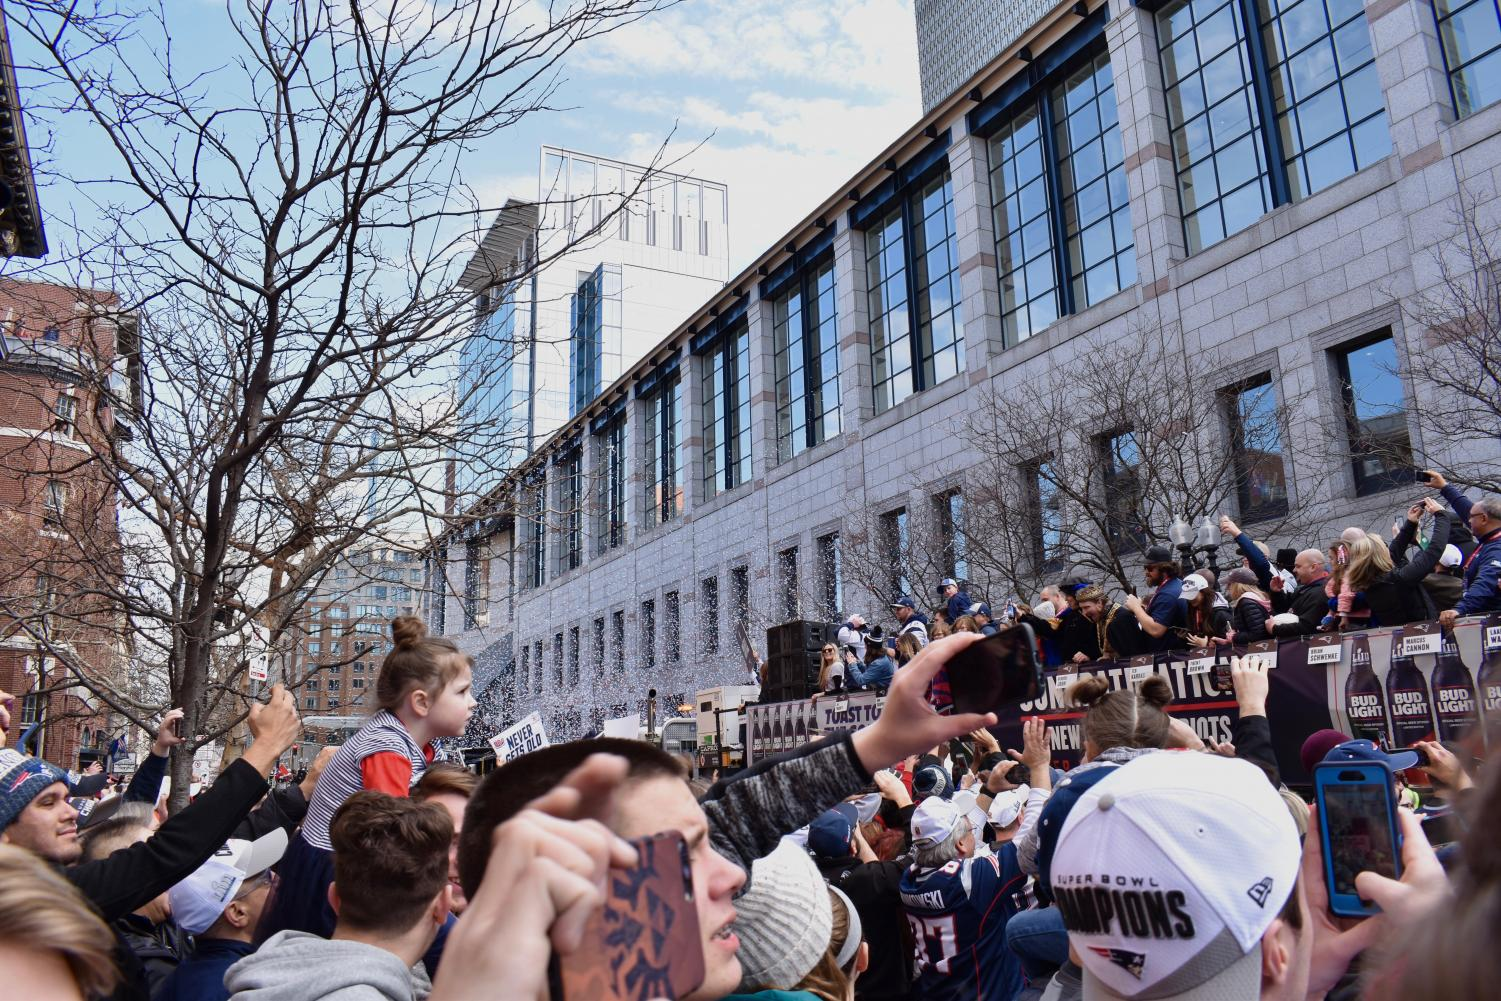 Patriots fans gathered on Boylston Street watch the duck boats go by.